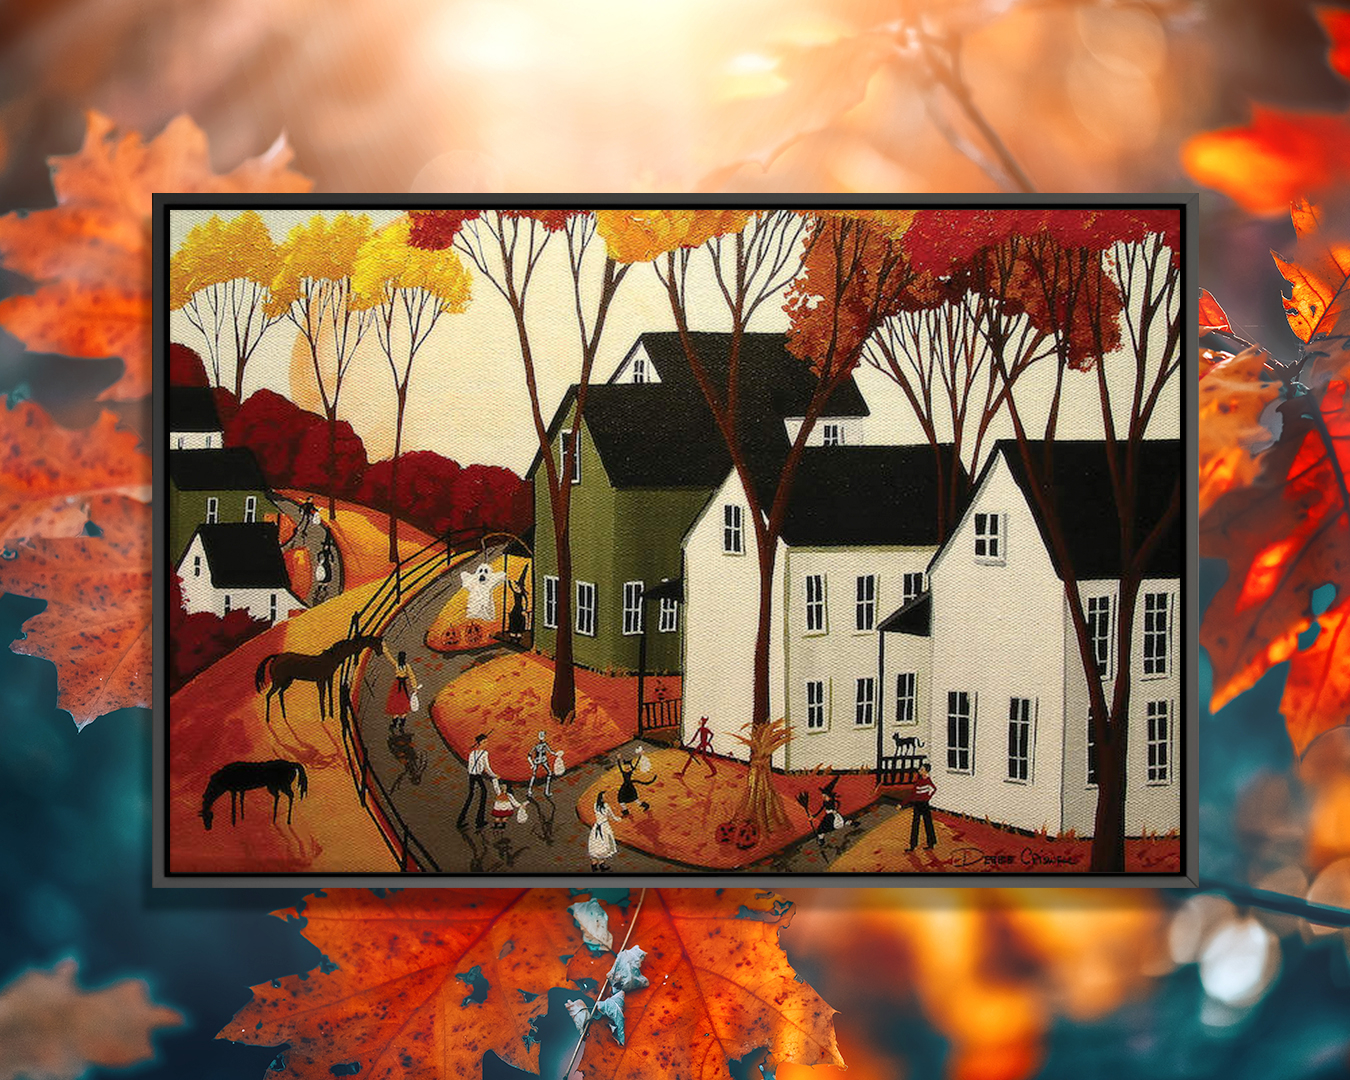 """""""Early Halloween"""" by Debbie Criswell shows people outside trick or treating next to horses and white houses under red, yellow, and orange trees."""